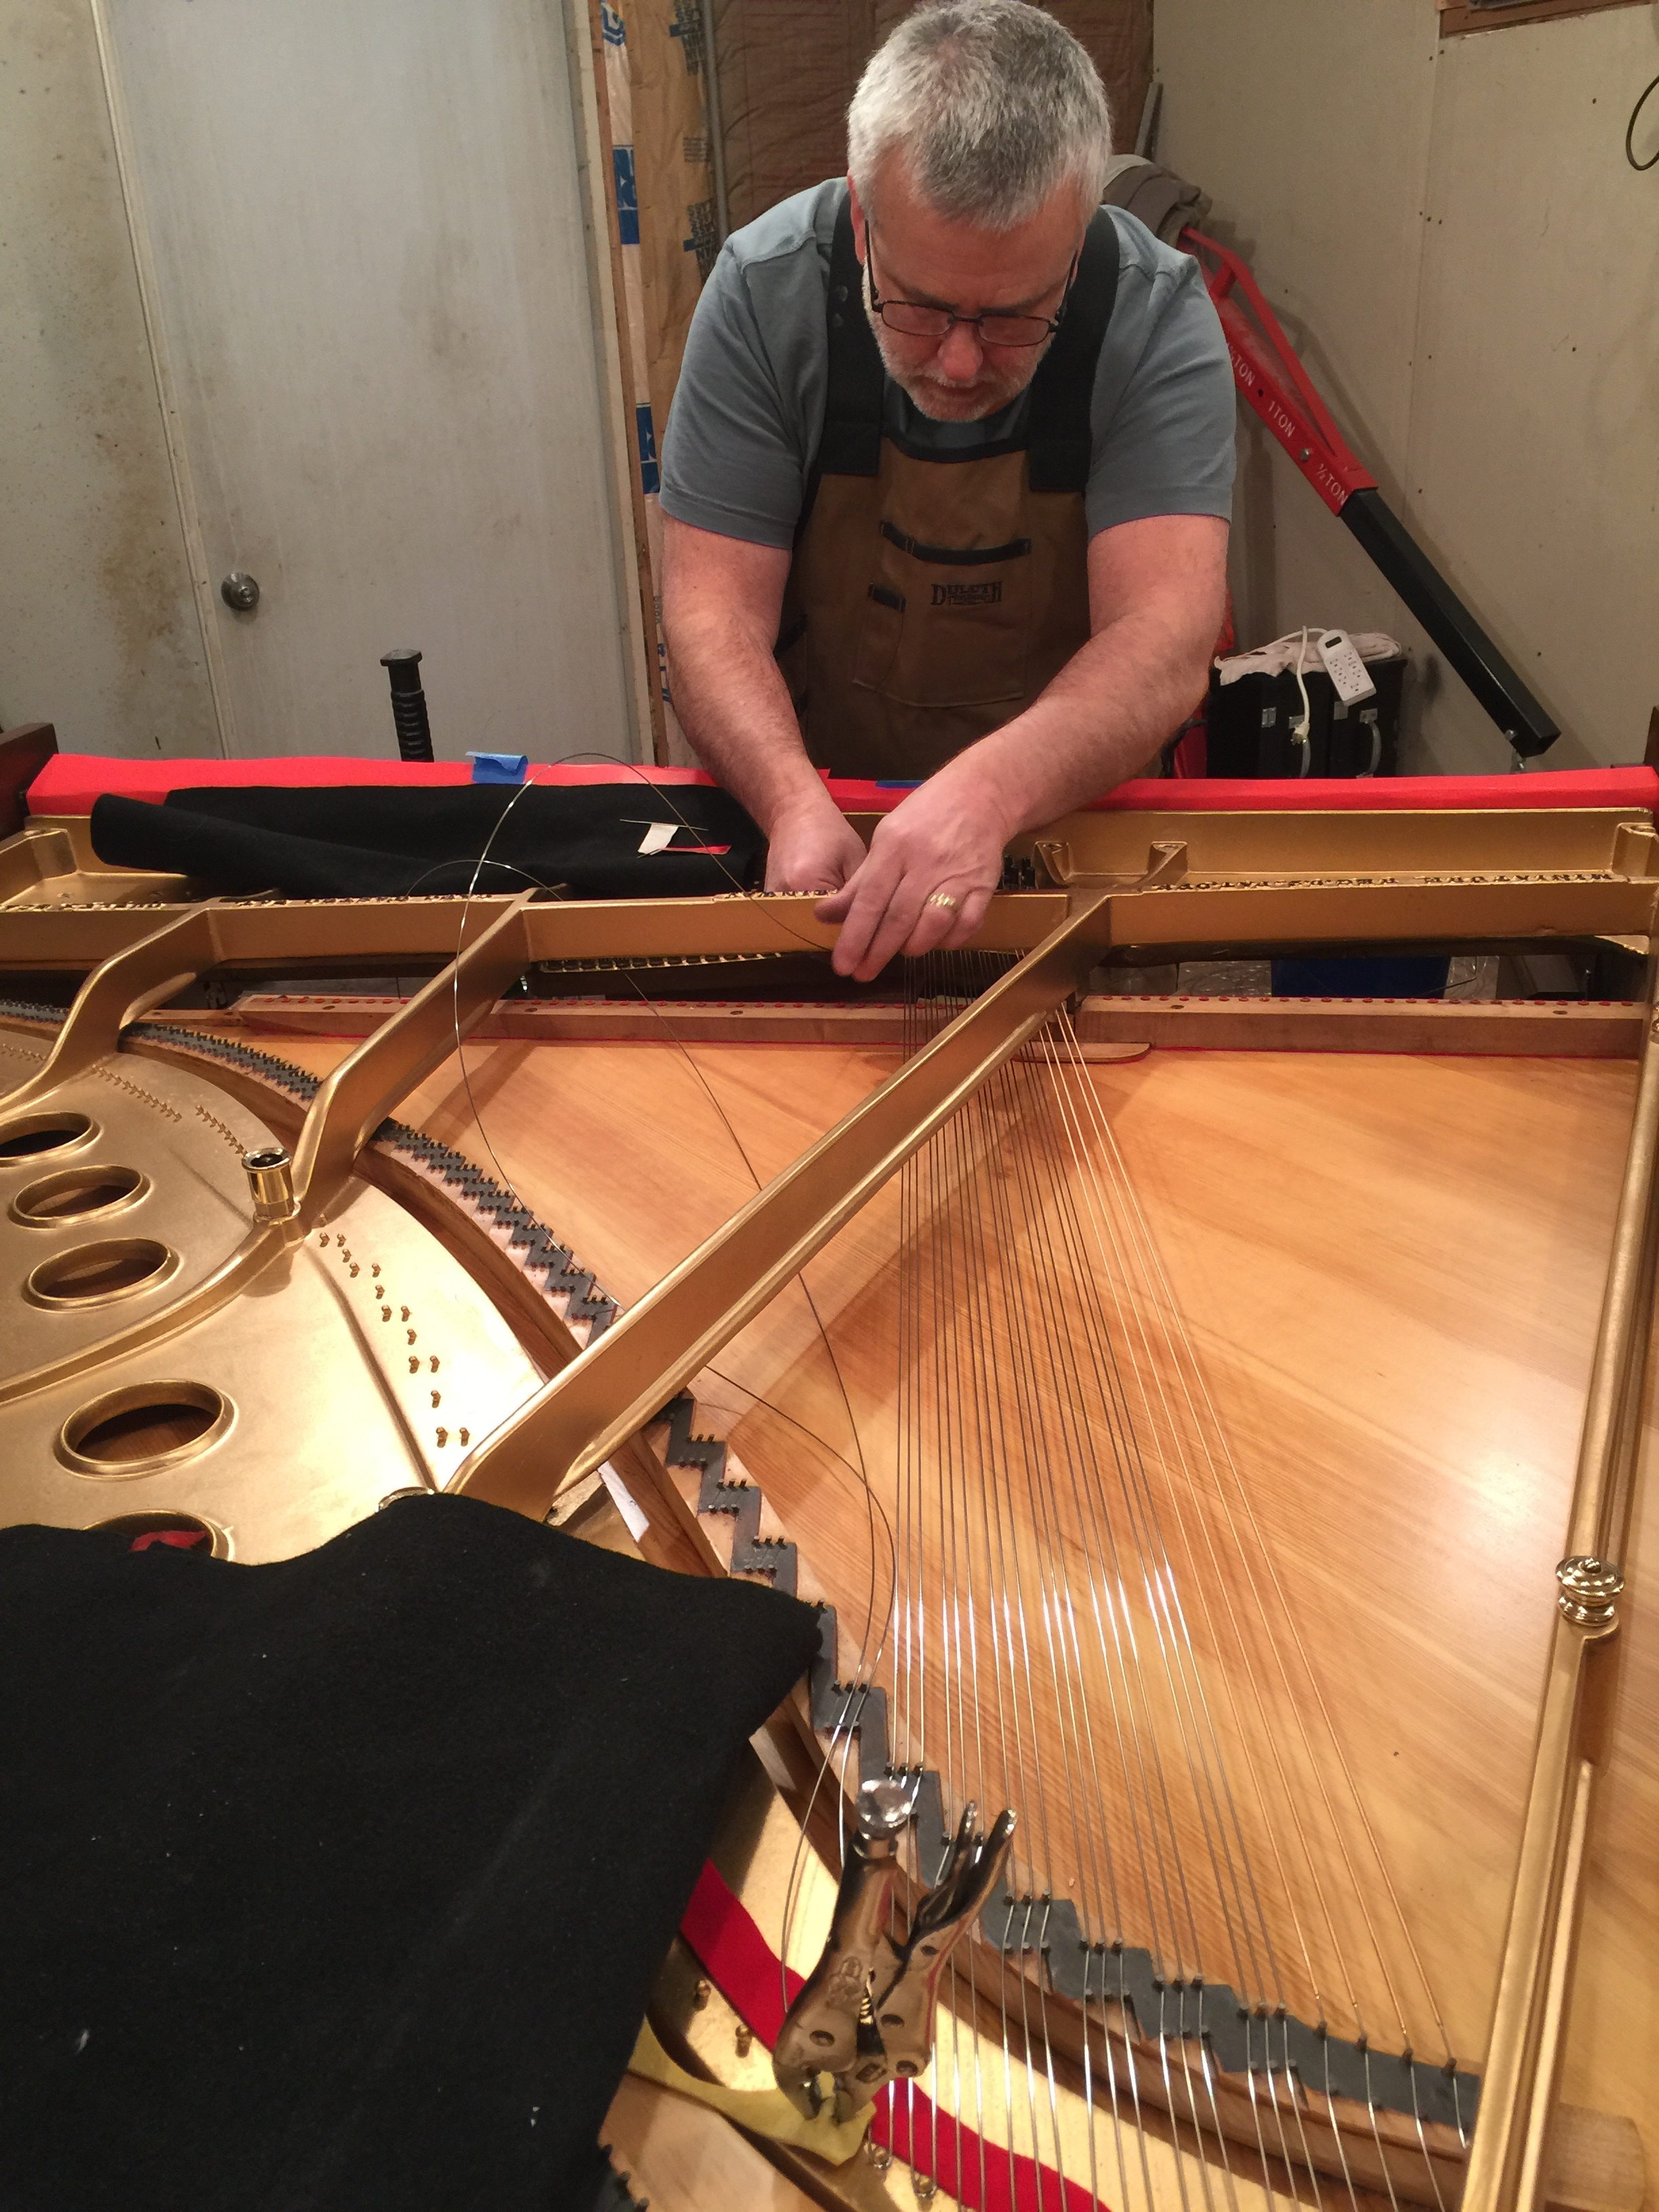 Ace Piano services and repairs pianos in Metro Detroit Michgian and rebuilds vintage Steinway pianos.